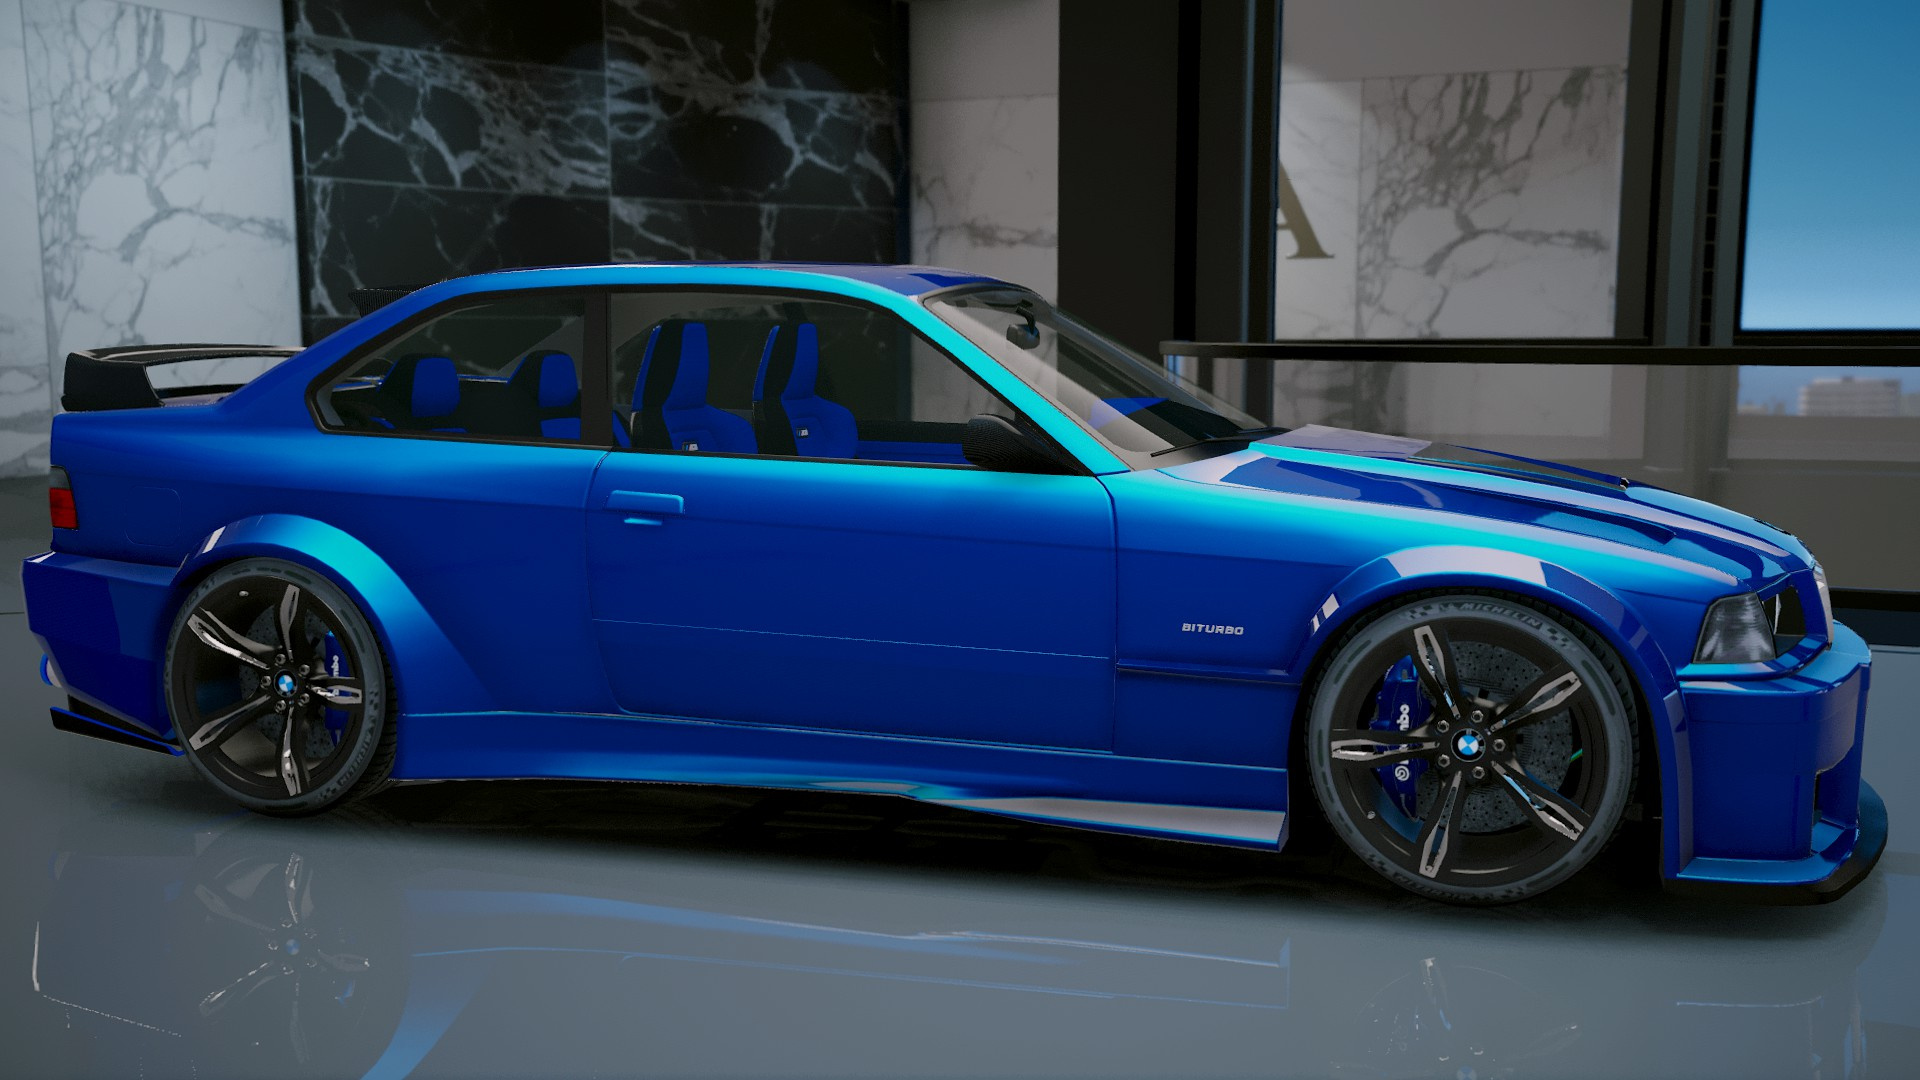 Supratd Widebodyfront as well Toyota Supra History in addition C D Gta Mod Bmwm E Rmodcustoms additionally Celica together with D Need Ca Vacuum Diagram Fsm Download Pic Ideal Vacuum Piping Ma B. on 1980 toyota supra turbo